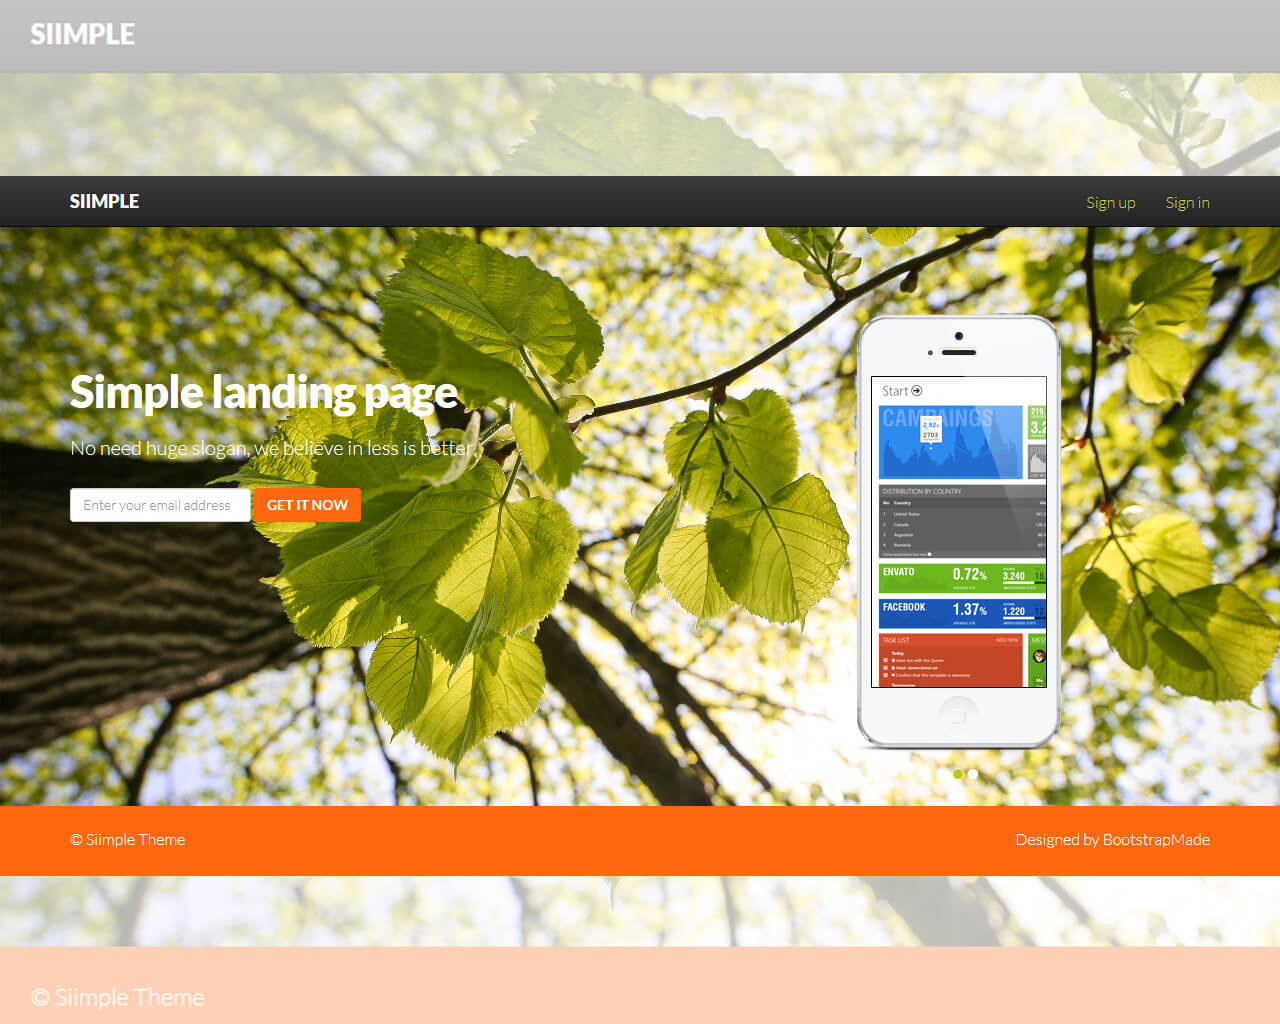 Siimple - Free bootstrap landing page template